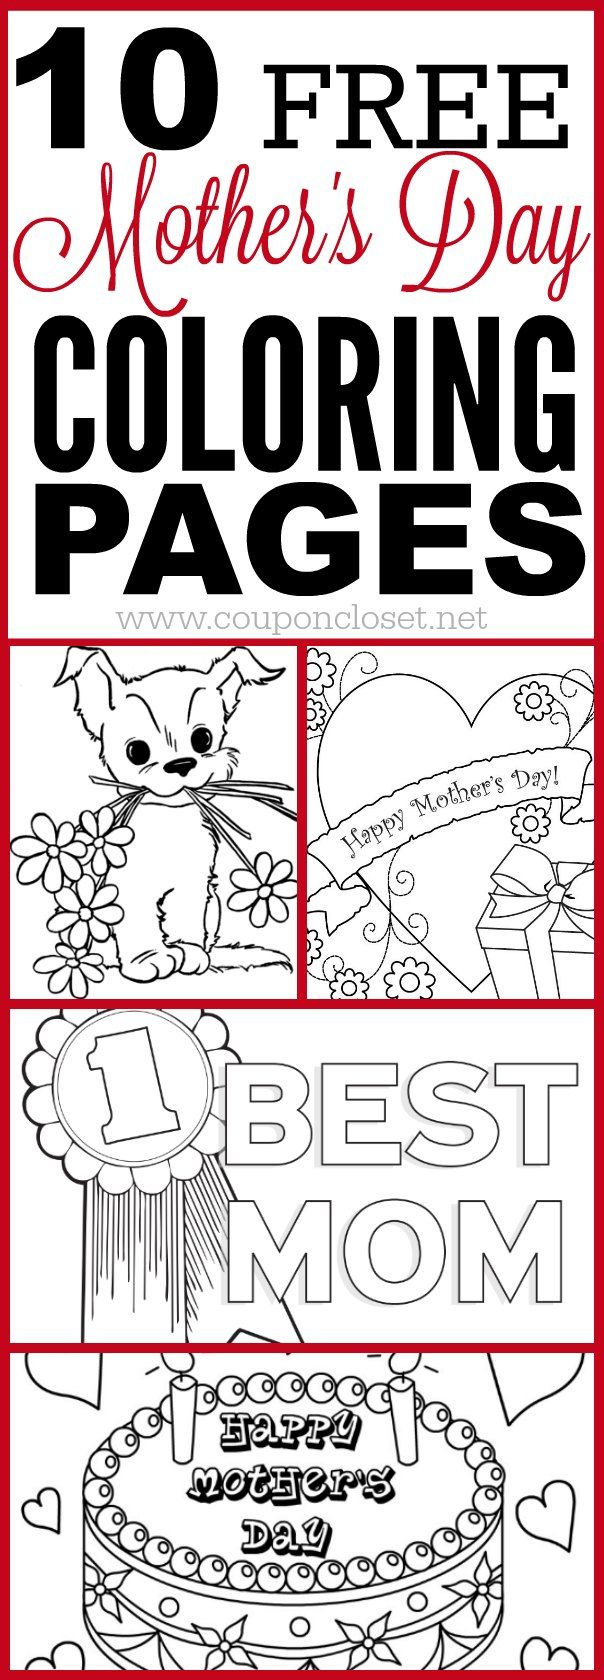 We have a list of free mothers day coloring pages that the kids can color for Mom. These print out coloring pages are perfect to surprise Mom with a homemade gift.